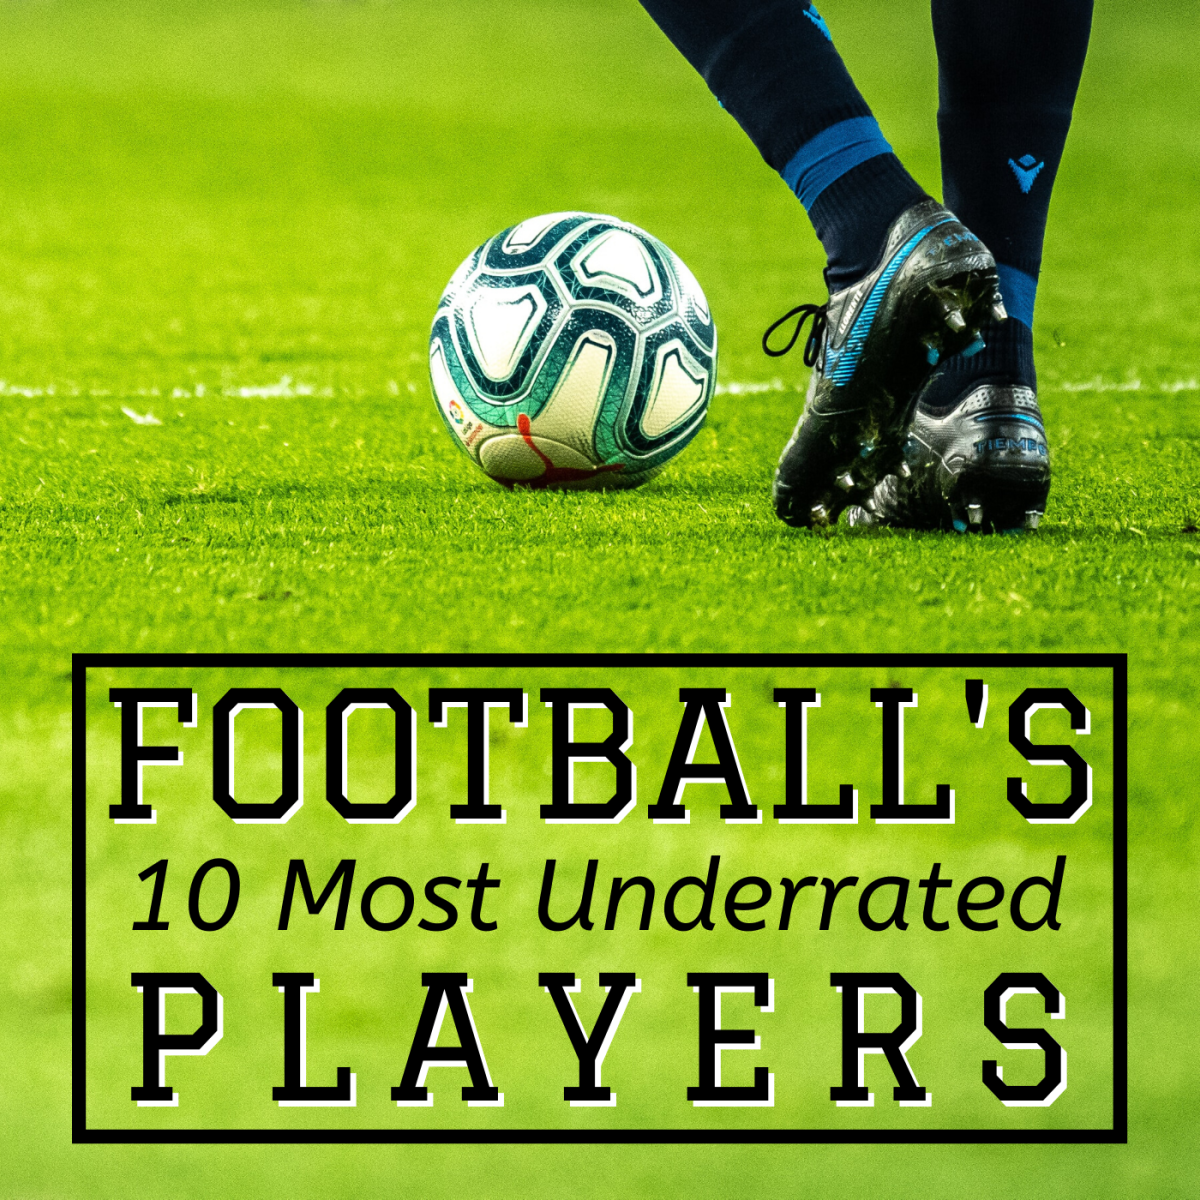 It's time to shine a spotlight on some of these forgotten players.